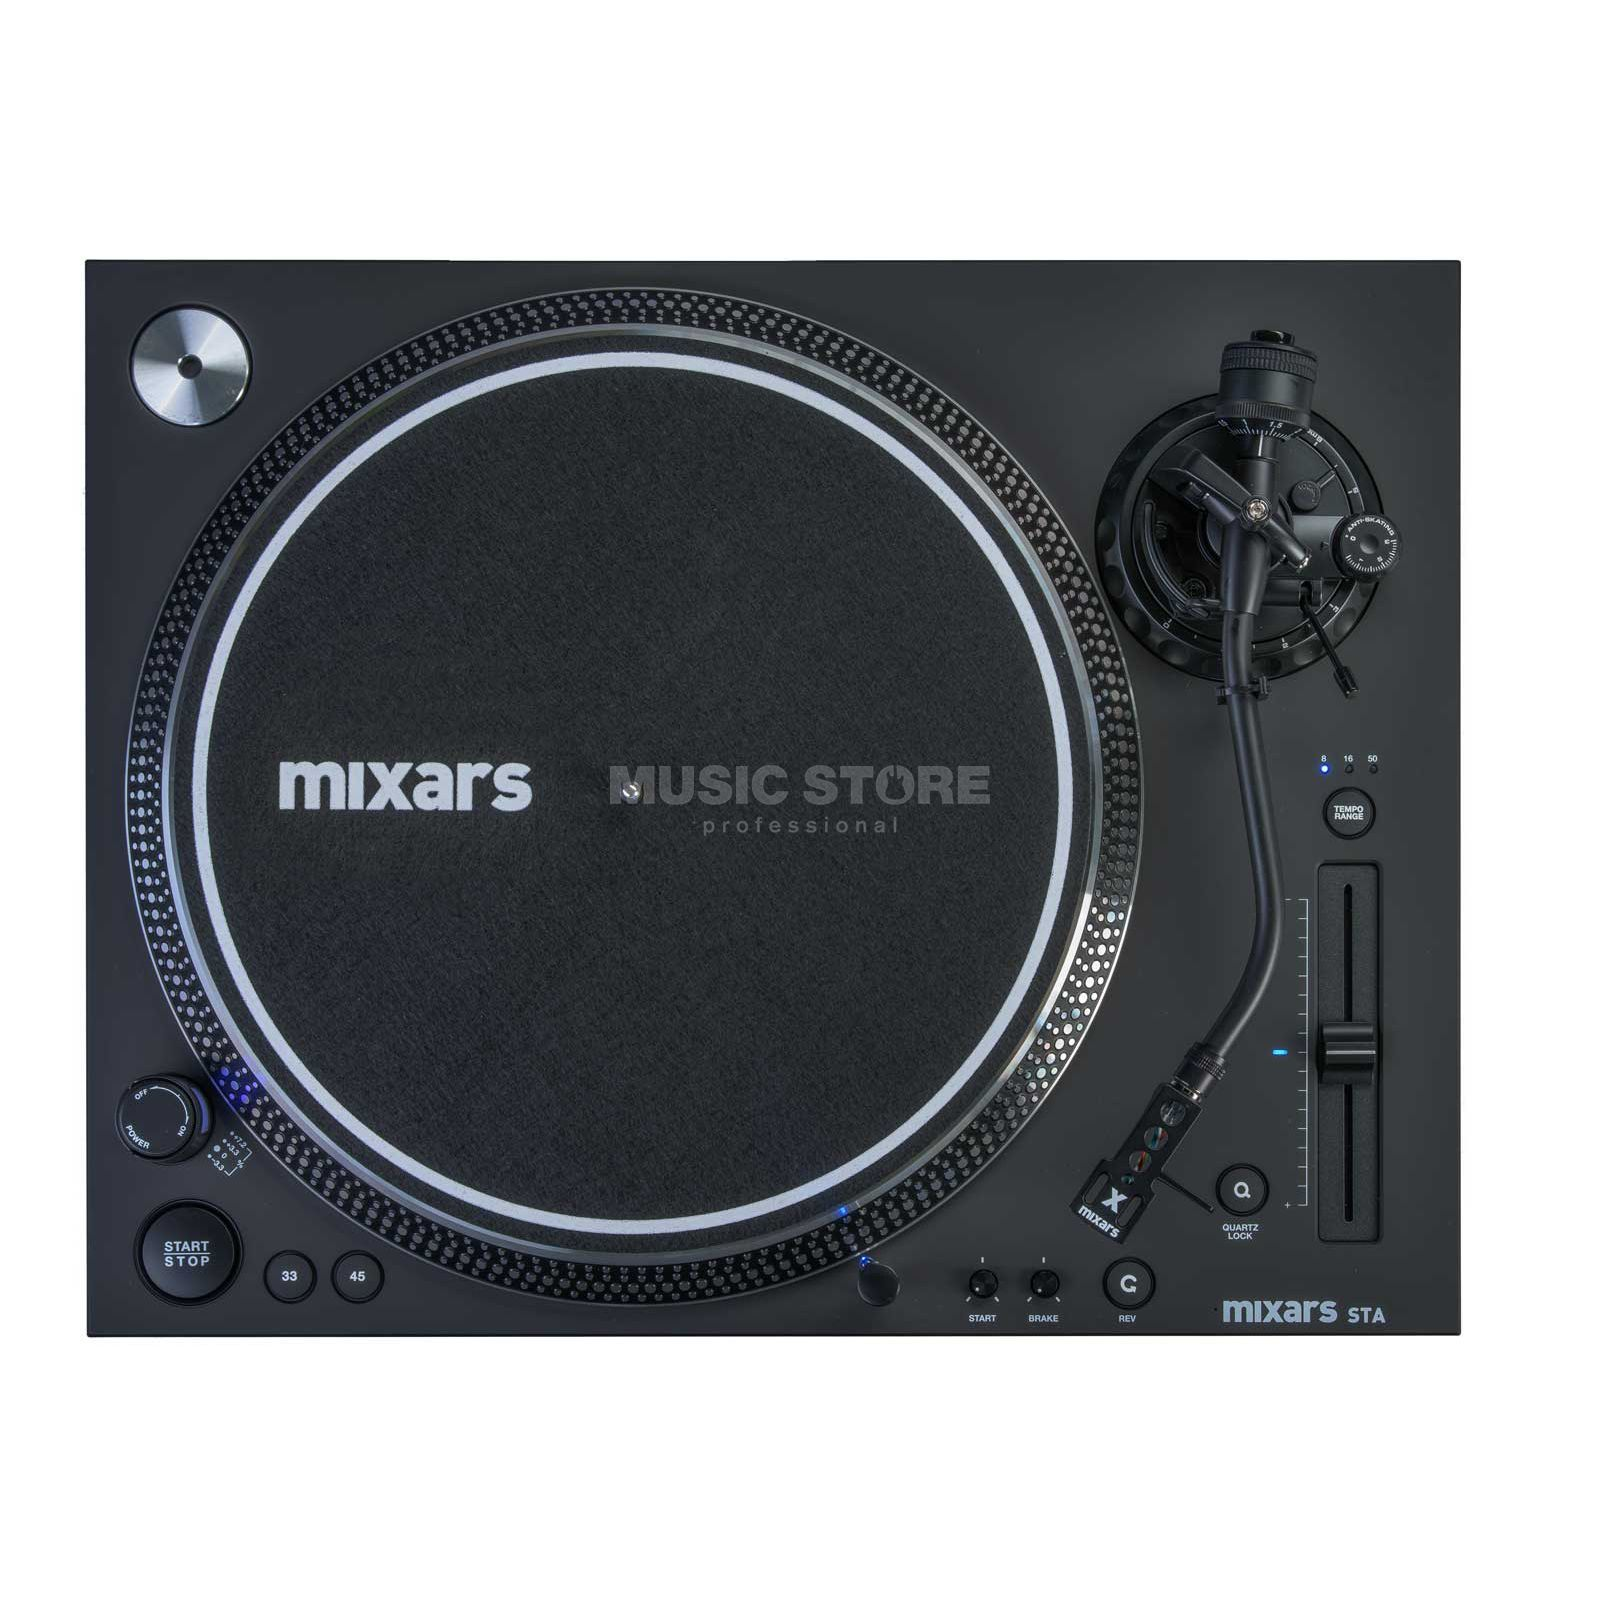 mixars STA Product Image